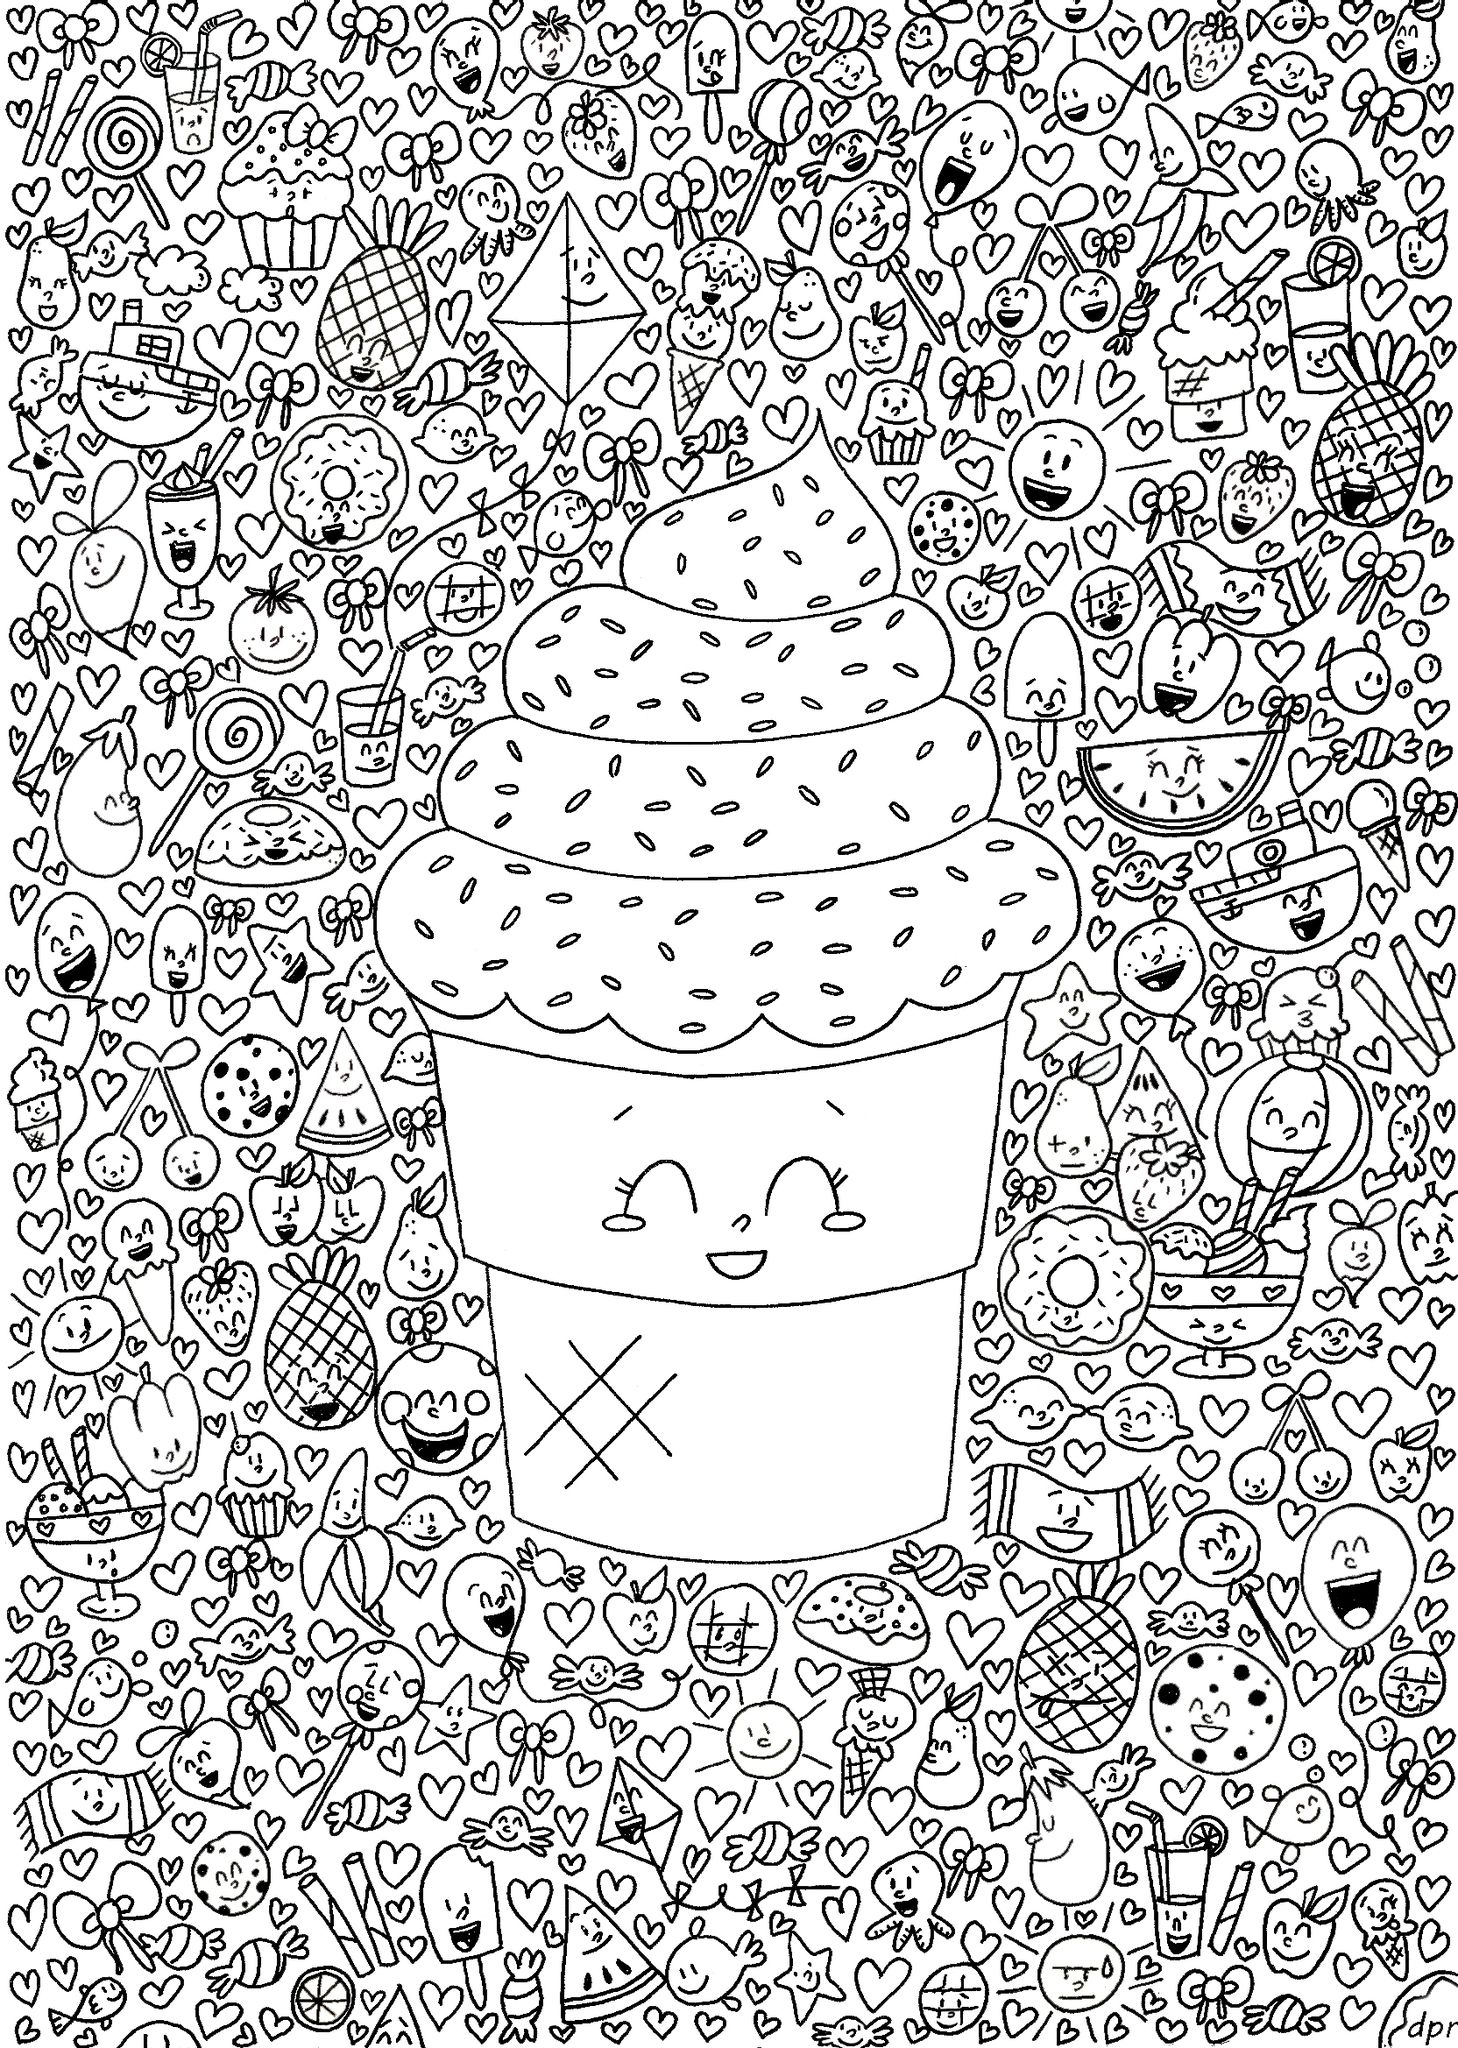 Coloriage art th rapie kawaii plaatjes voor de kids - Coloriage therapie ...